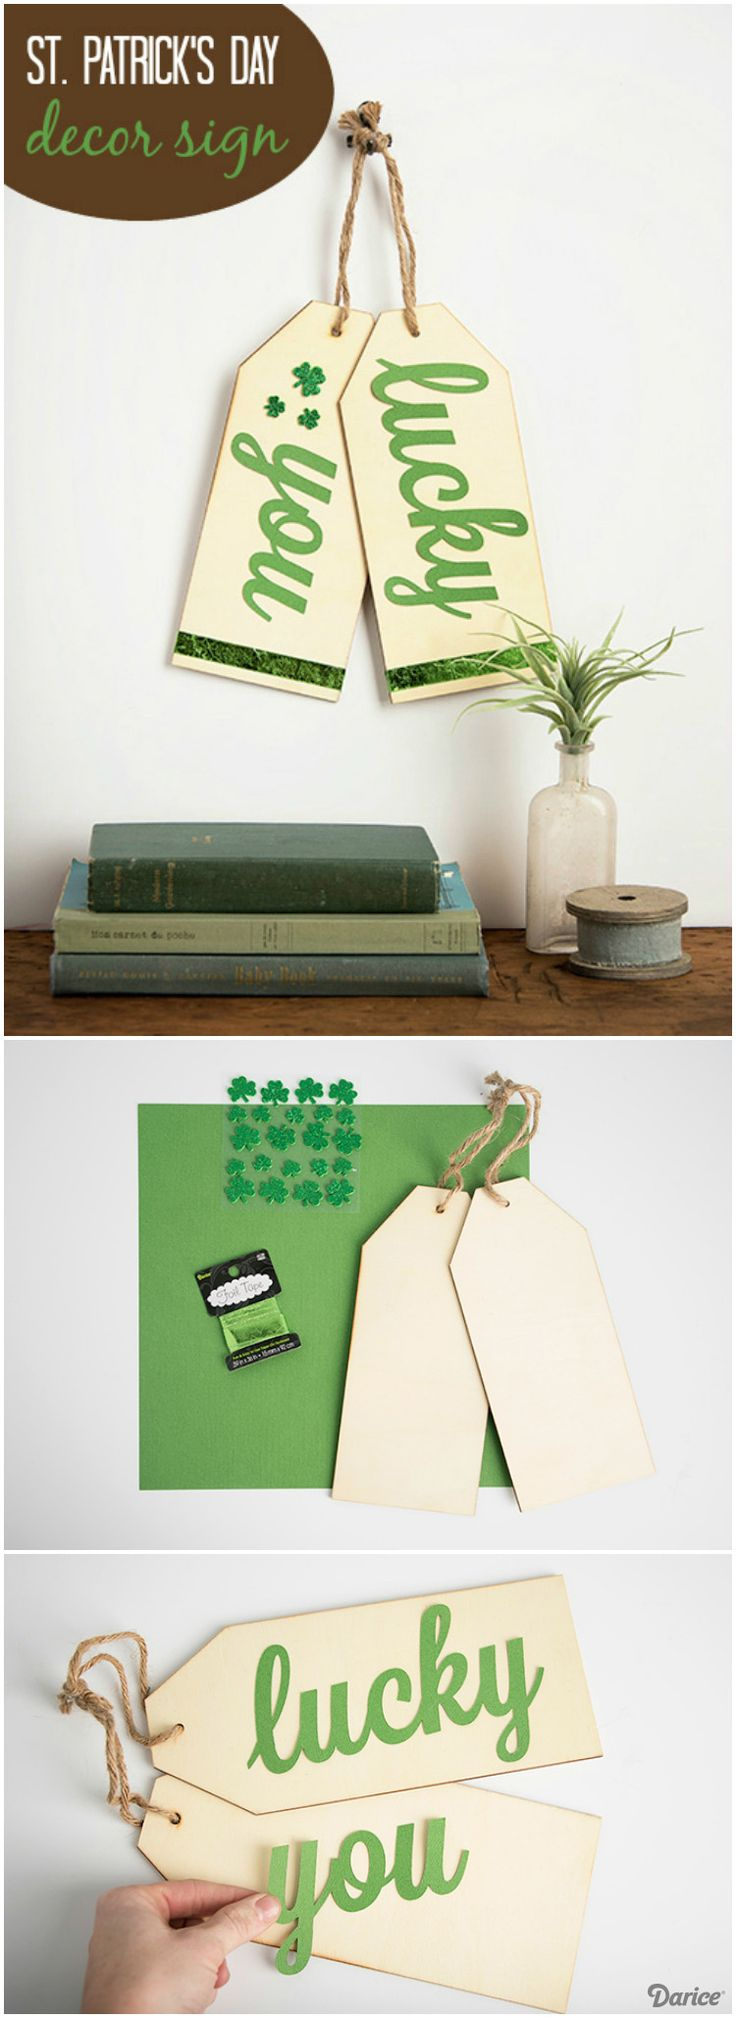 Turn these trending over-sized wood tags into a fun St. Patrick's Day DIY decor sign. It would look great displayed on your front door or in the home.